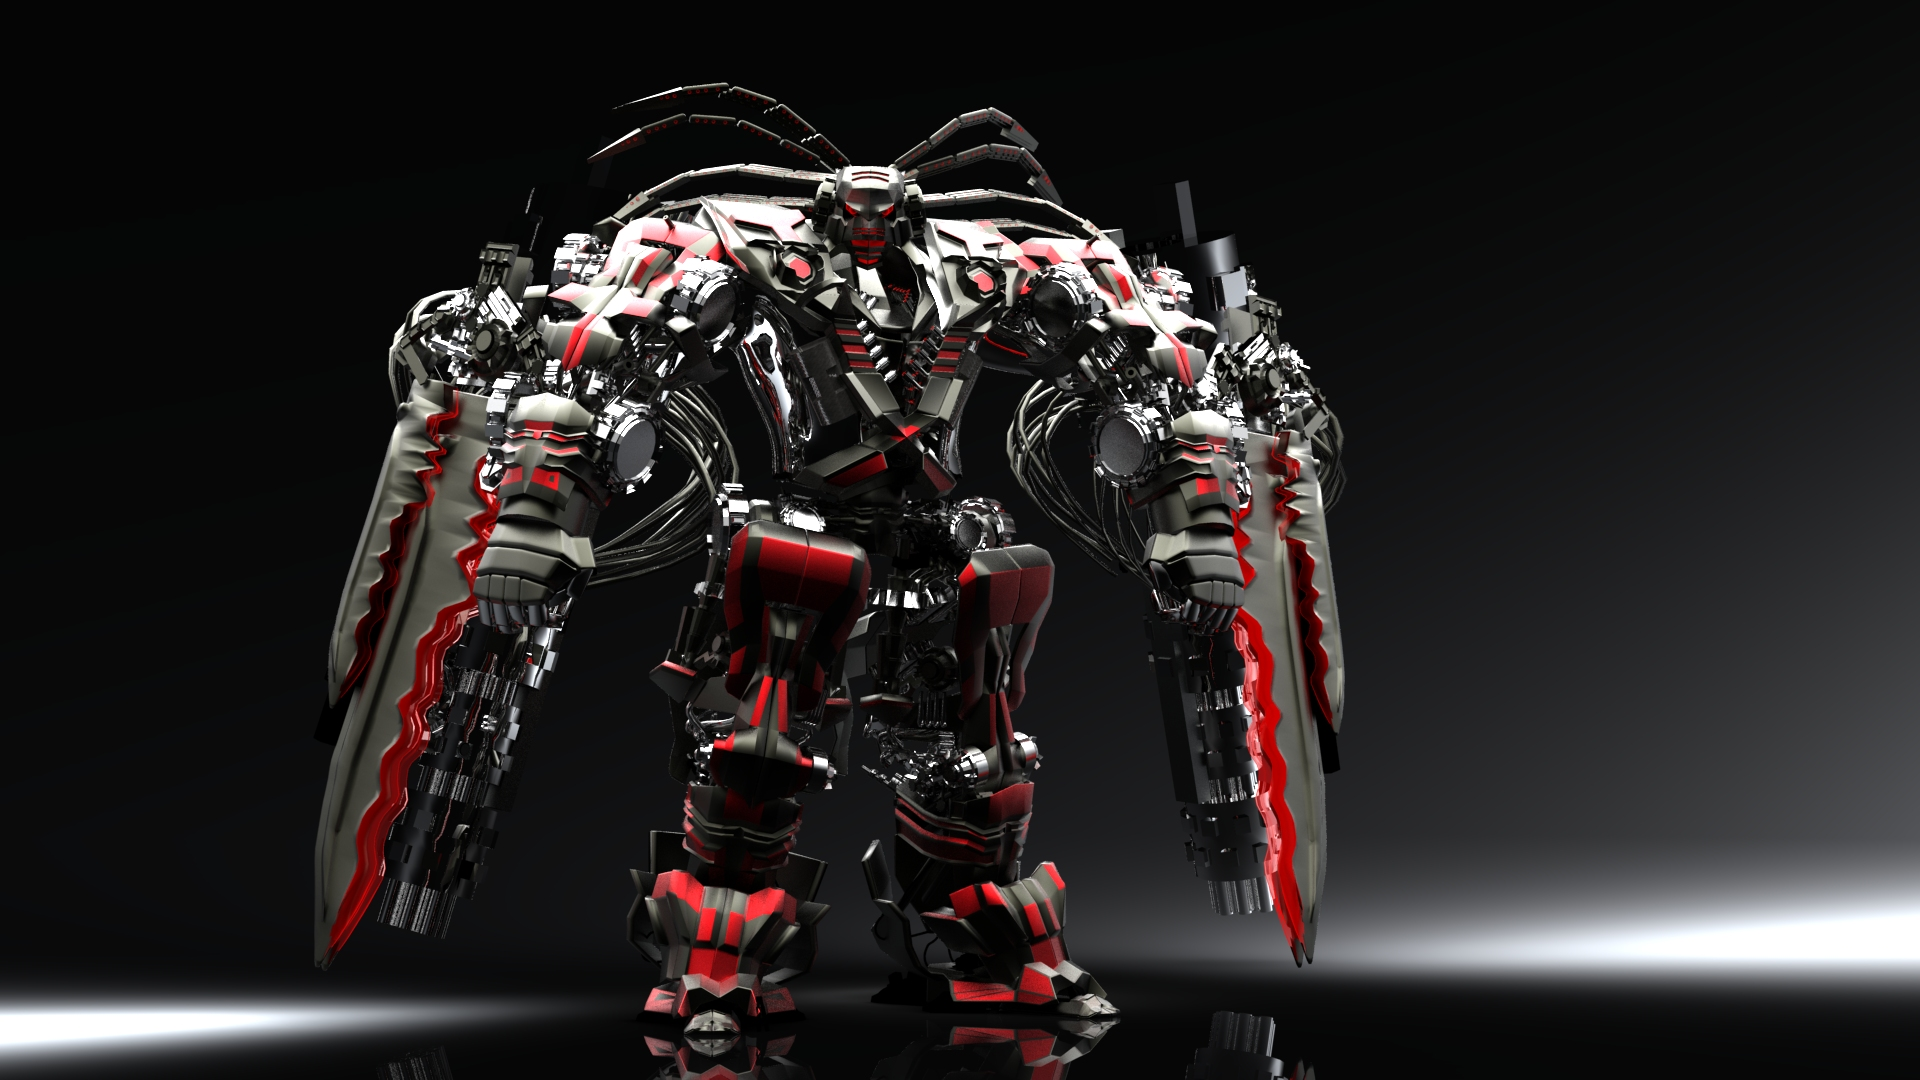 Hd wallpaper robot - Awesome Hd Robot Wallpapers Backgrounds For Free Download